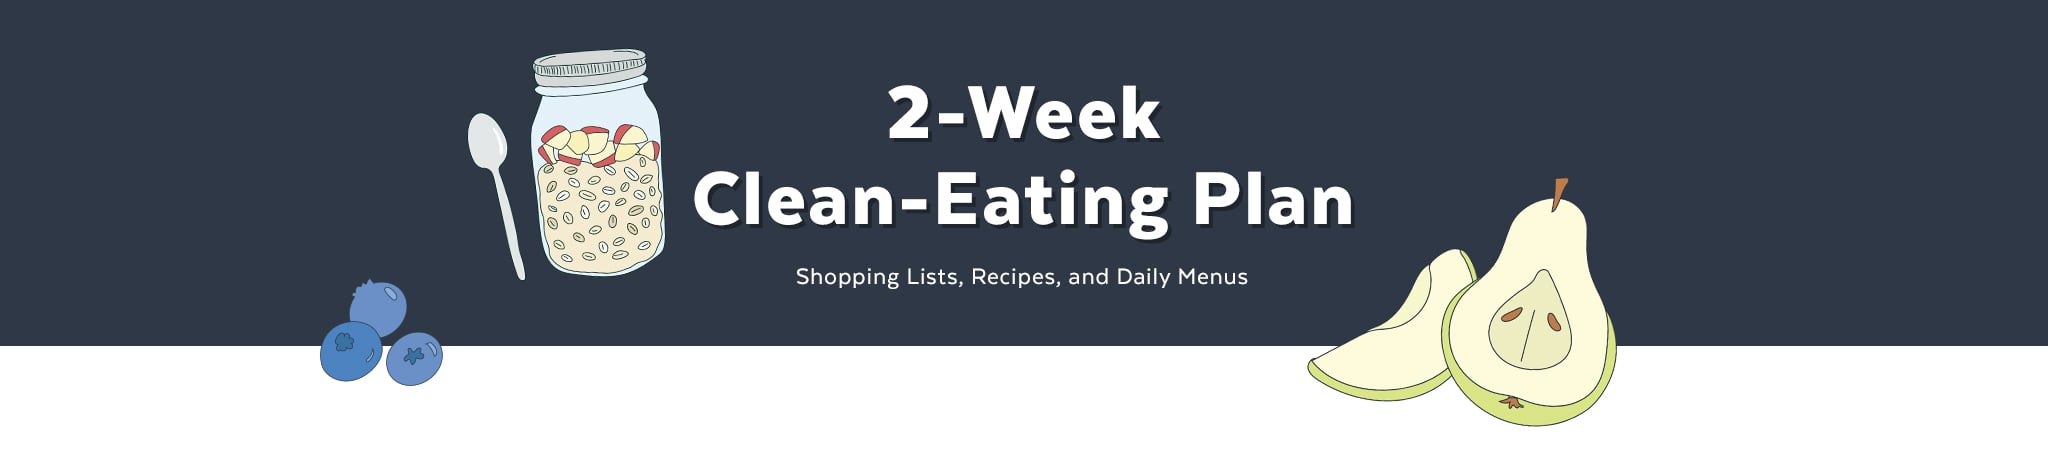 A Clean-Eating Plan With Recipes, Shopping Lists, Menus, and More!